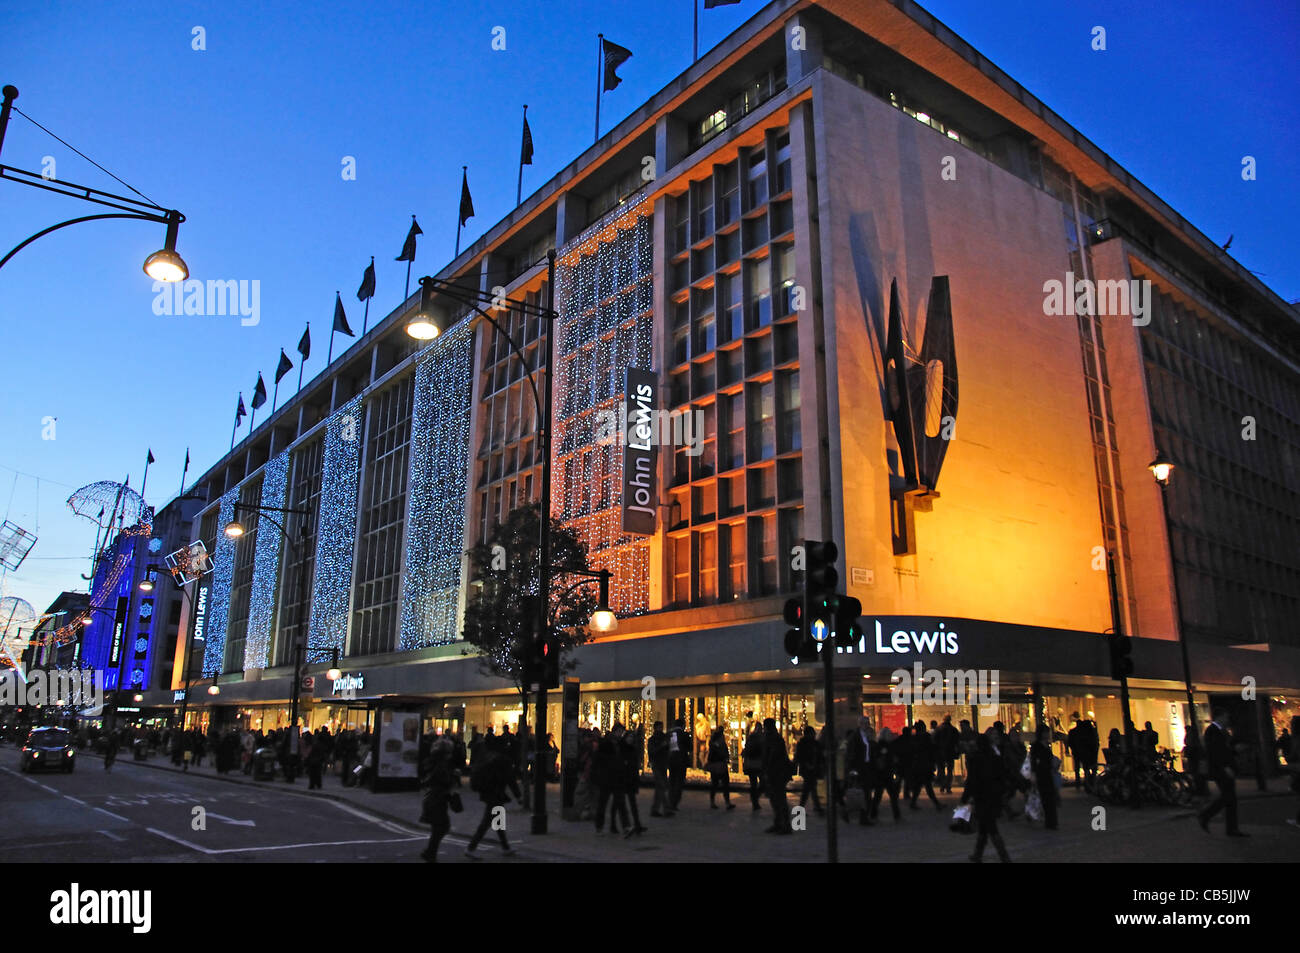 John Lewis department store at Christmas, Oxford Street, City of Westminster, London, Greater London, England, United - Stock Image